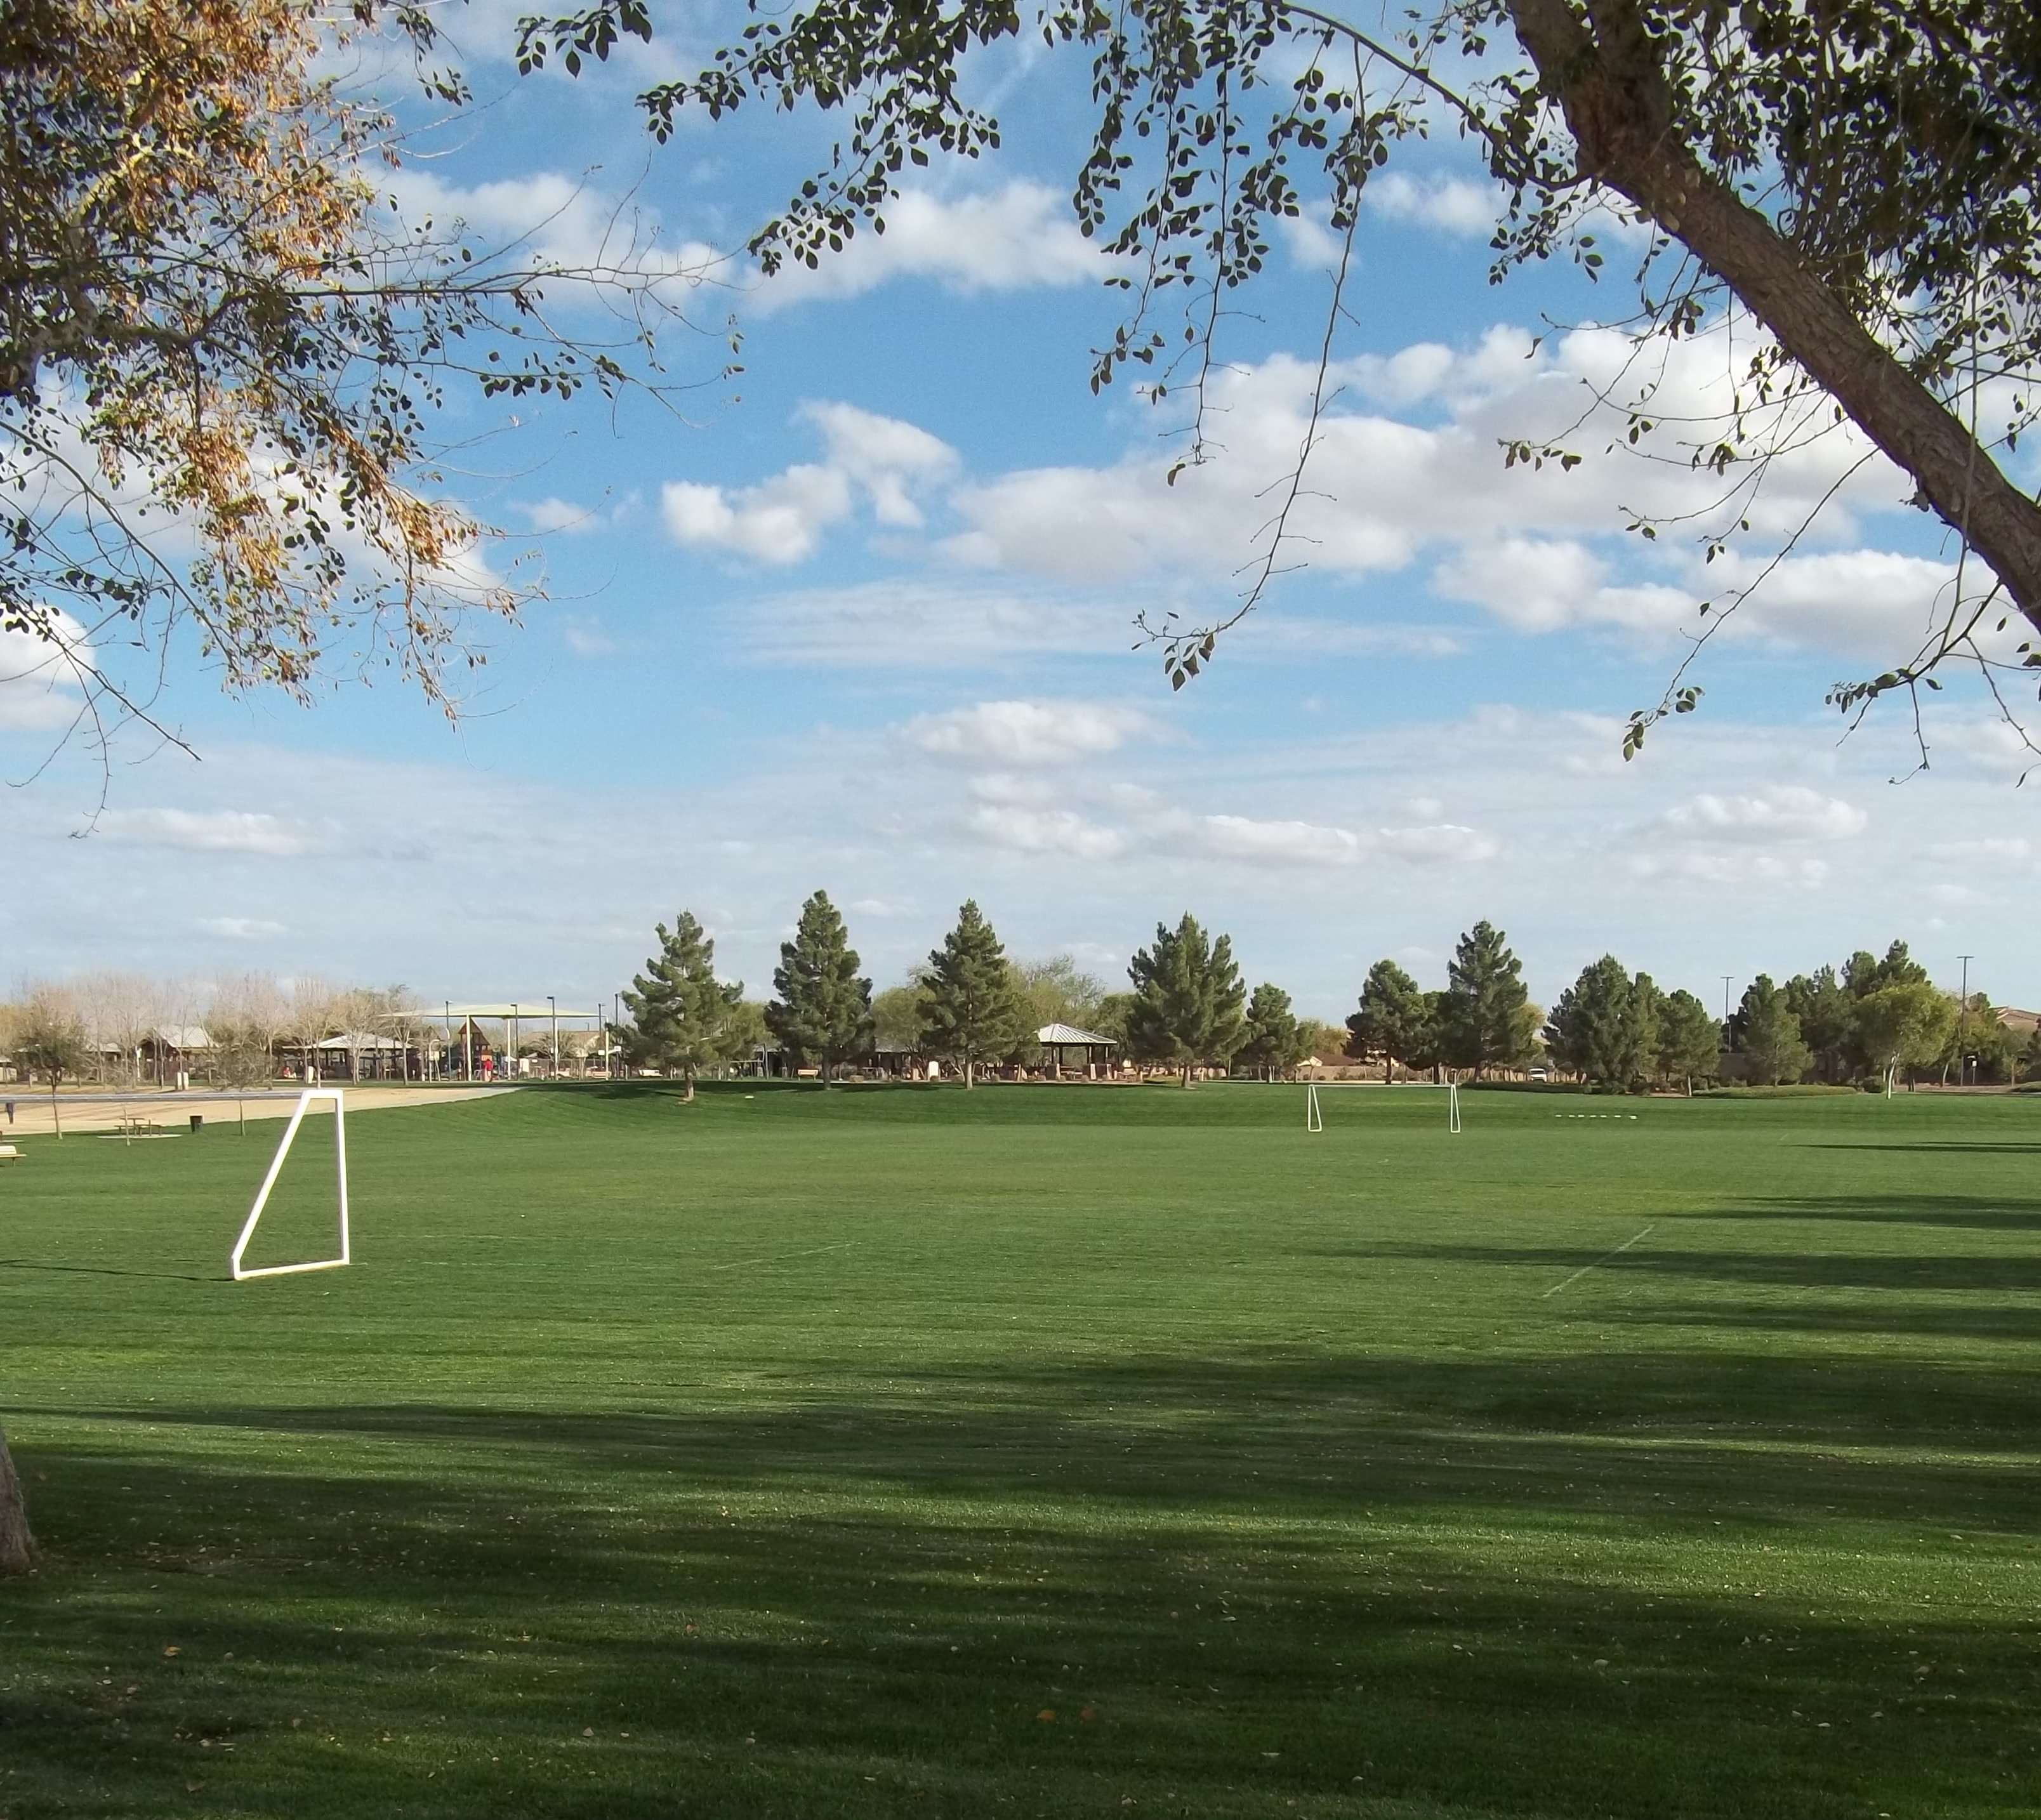 Wide Soccer Field with Two White Goal Nets